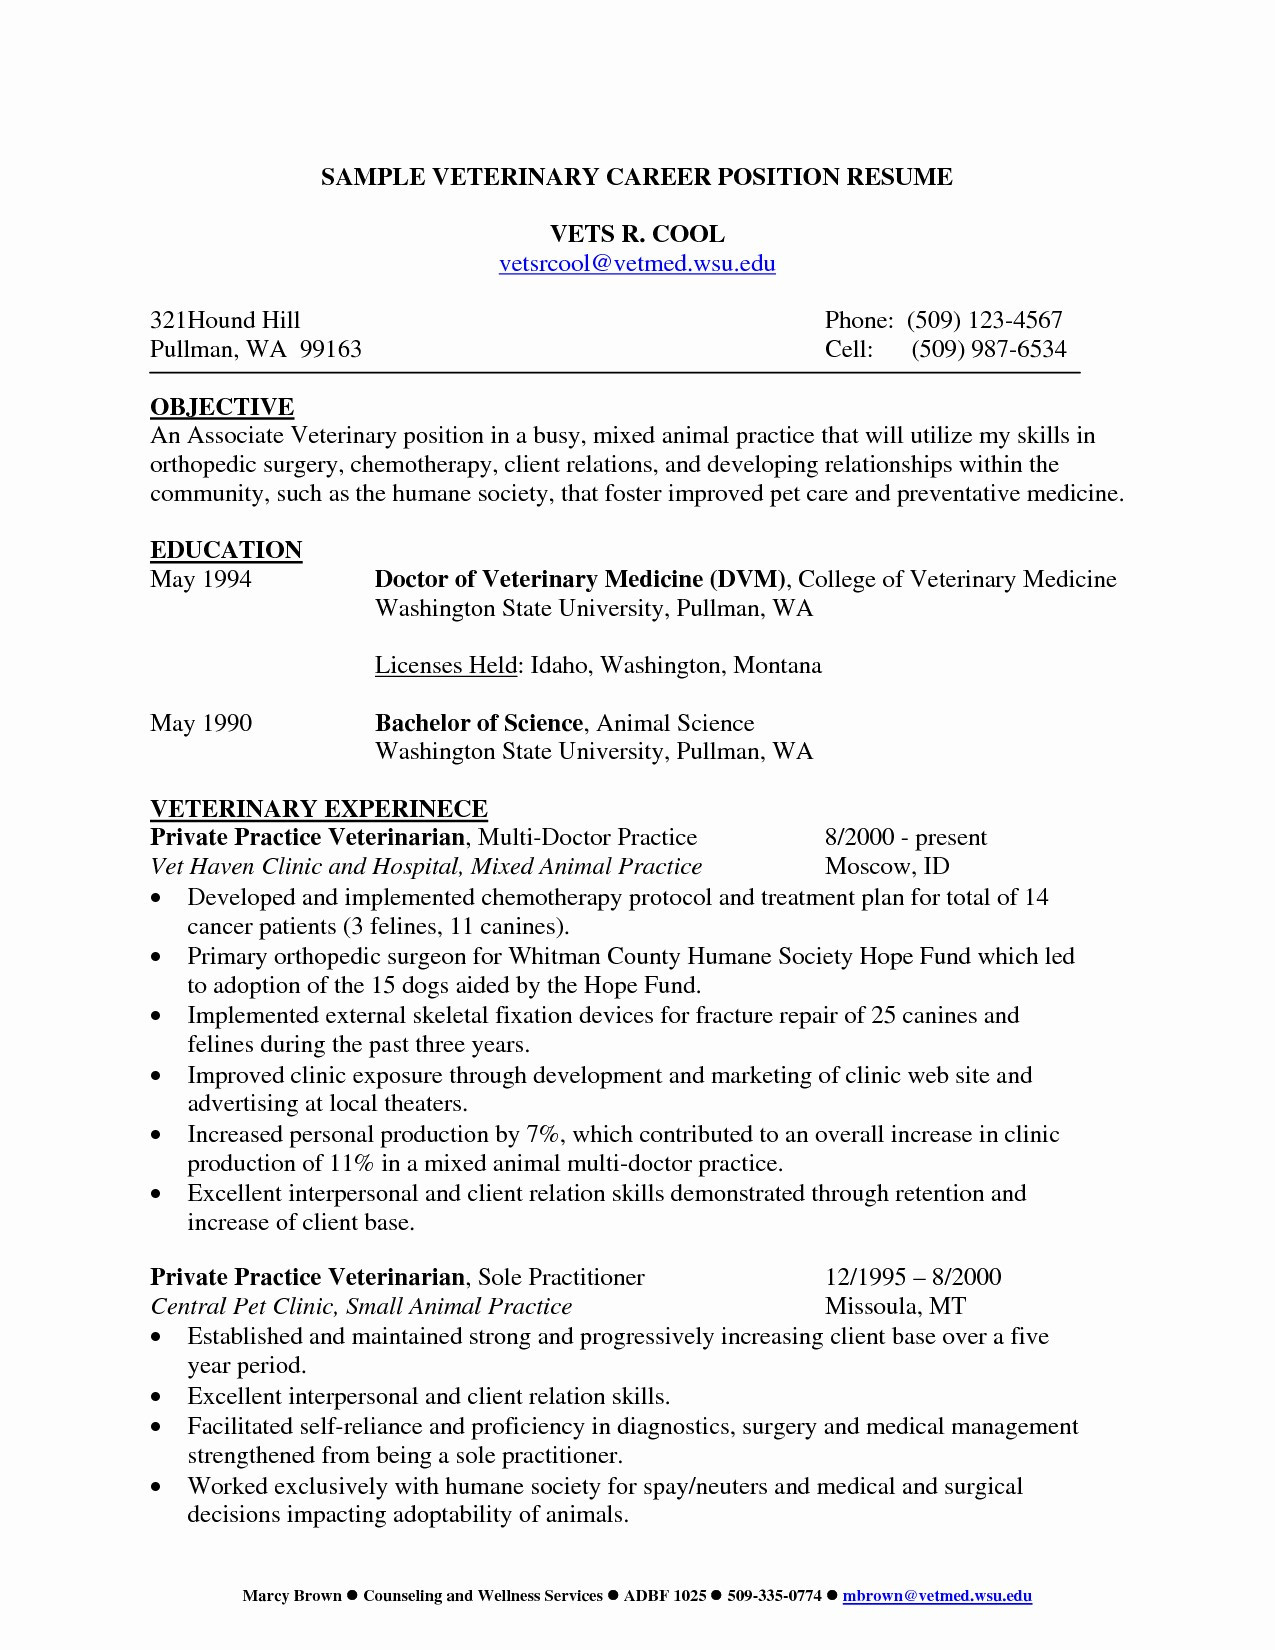 Counselor Resume Template - Counselling Letter Template 2018 Professional Pharmacy Tech Resume